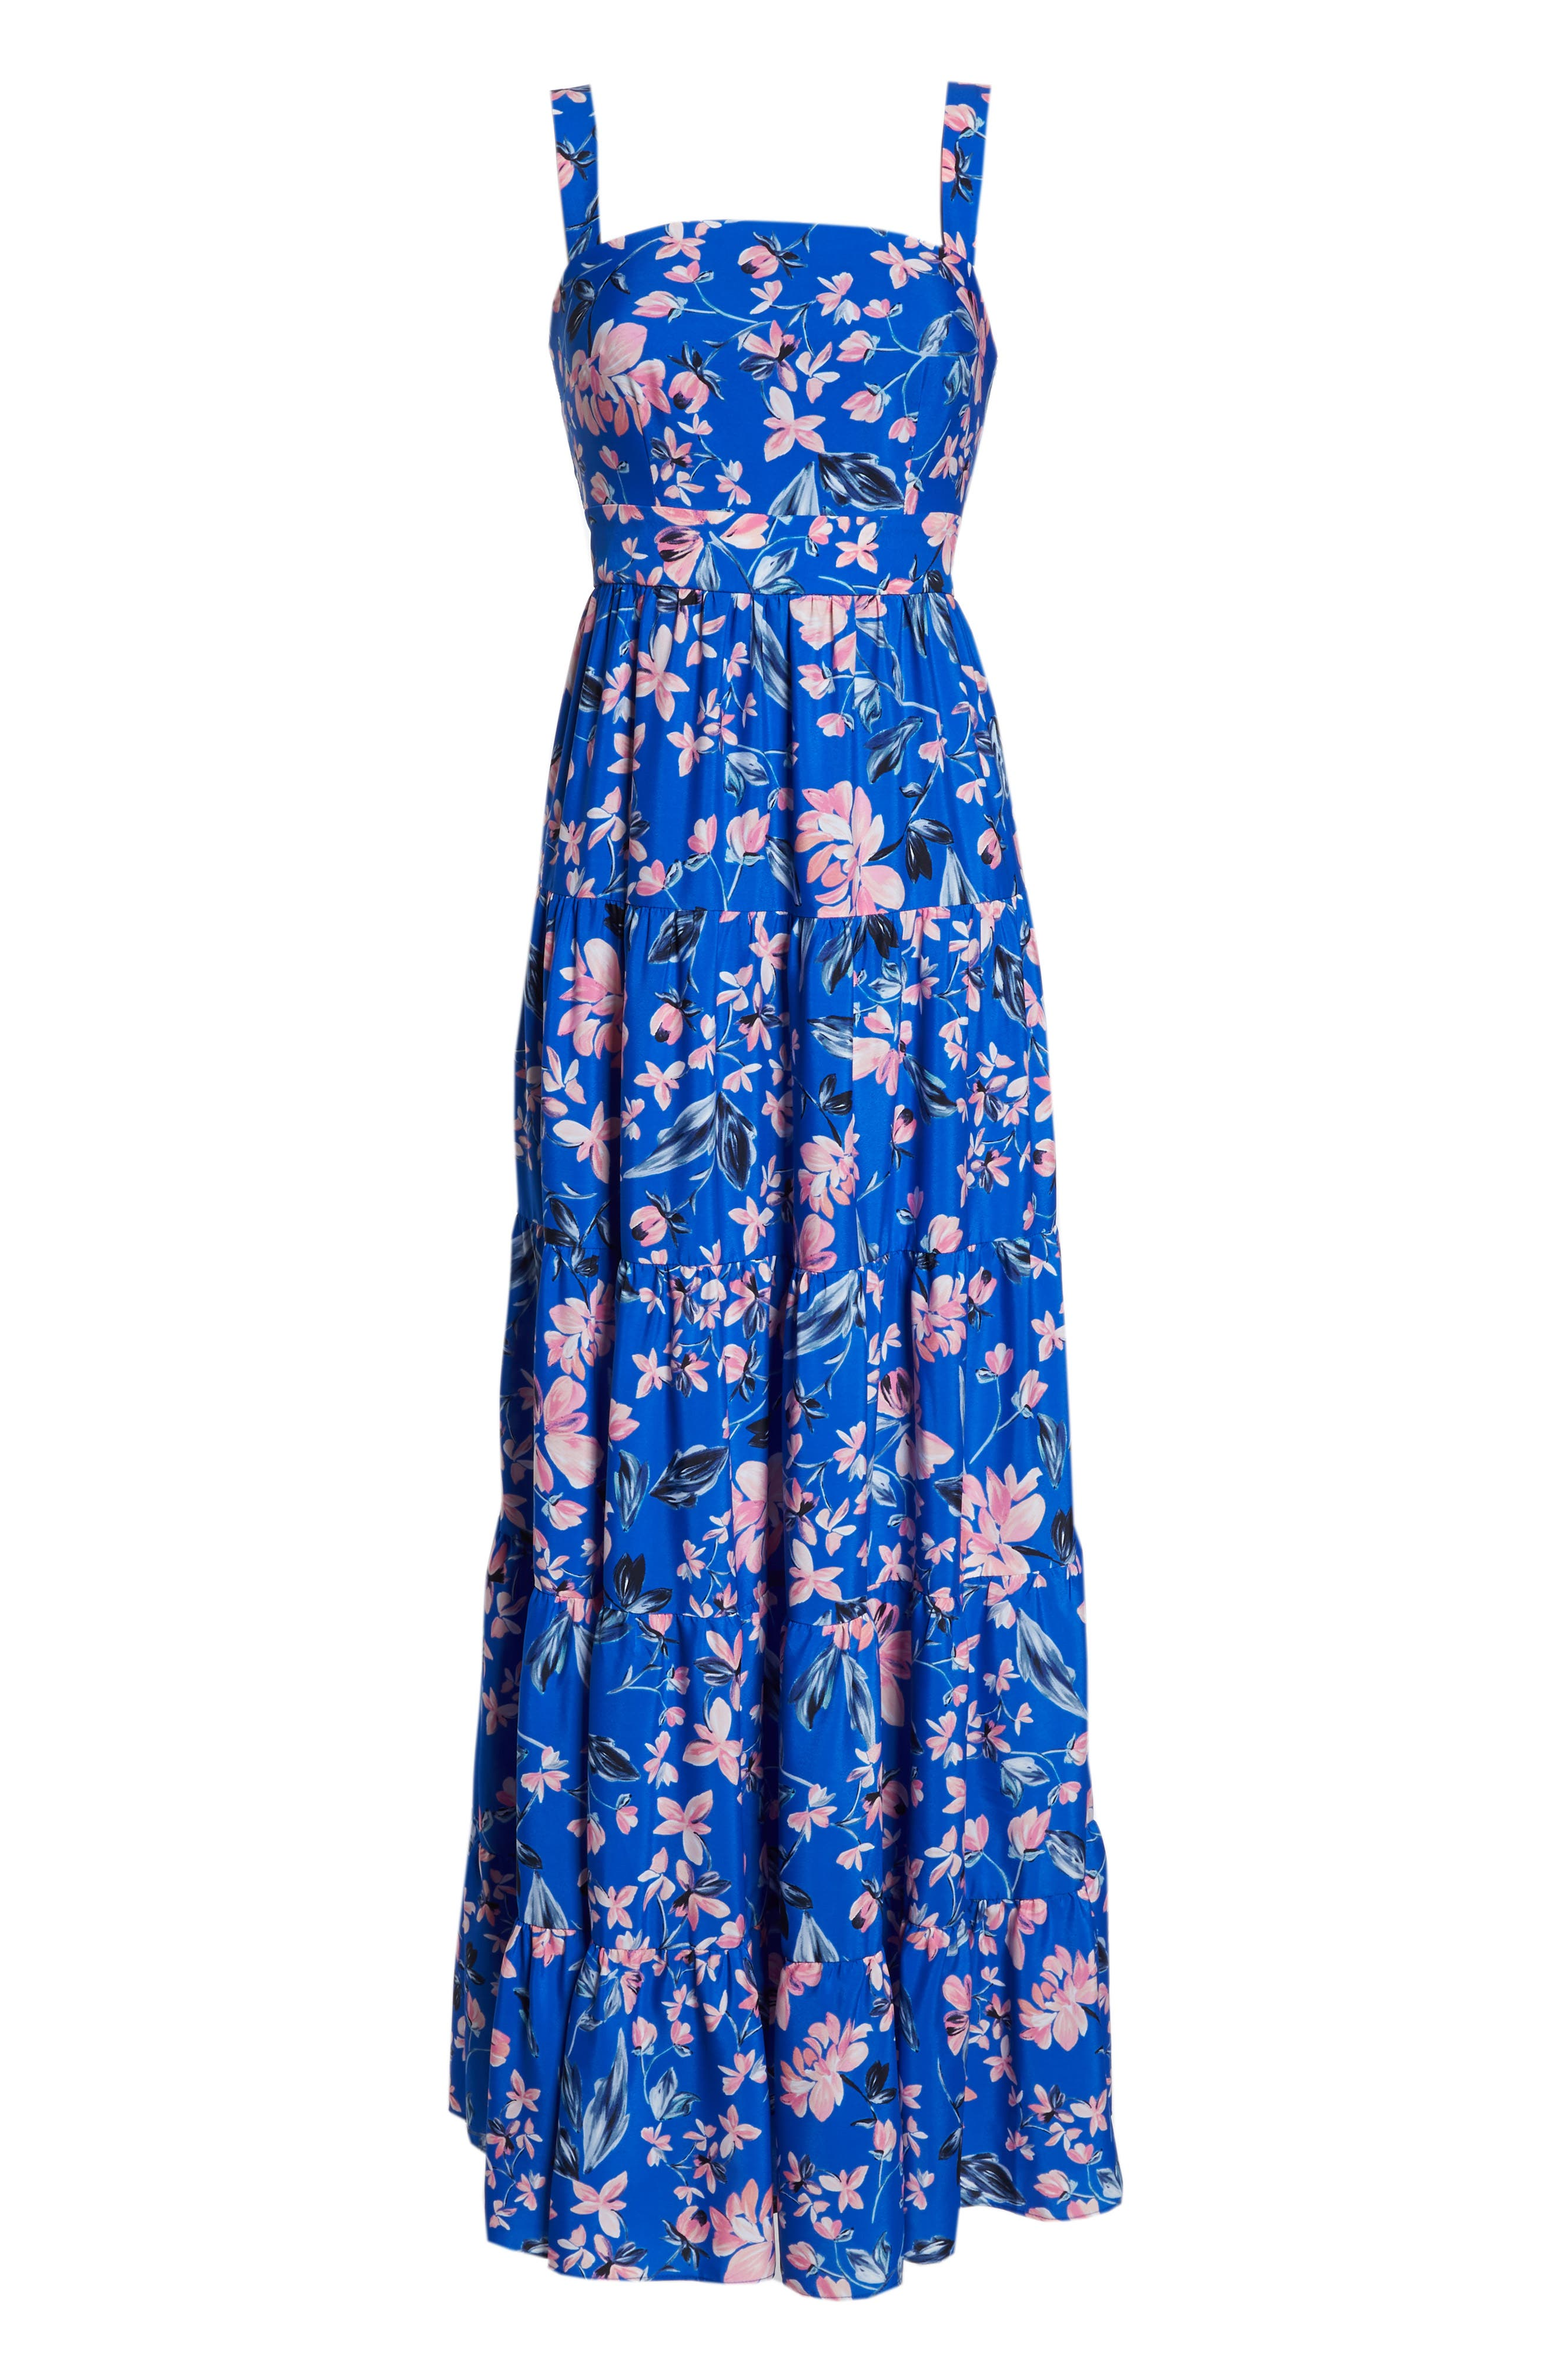 Floral Tiered Maxi Dress,                             Alternate thumbnail 7, color,                             Cobalt